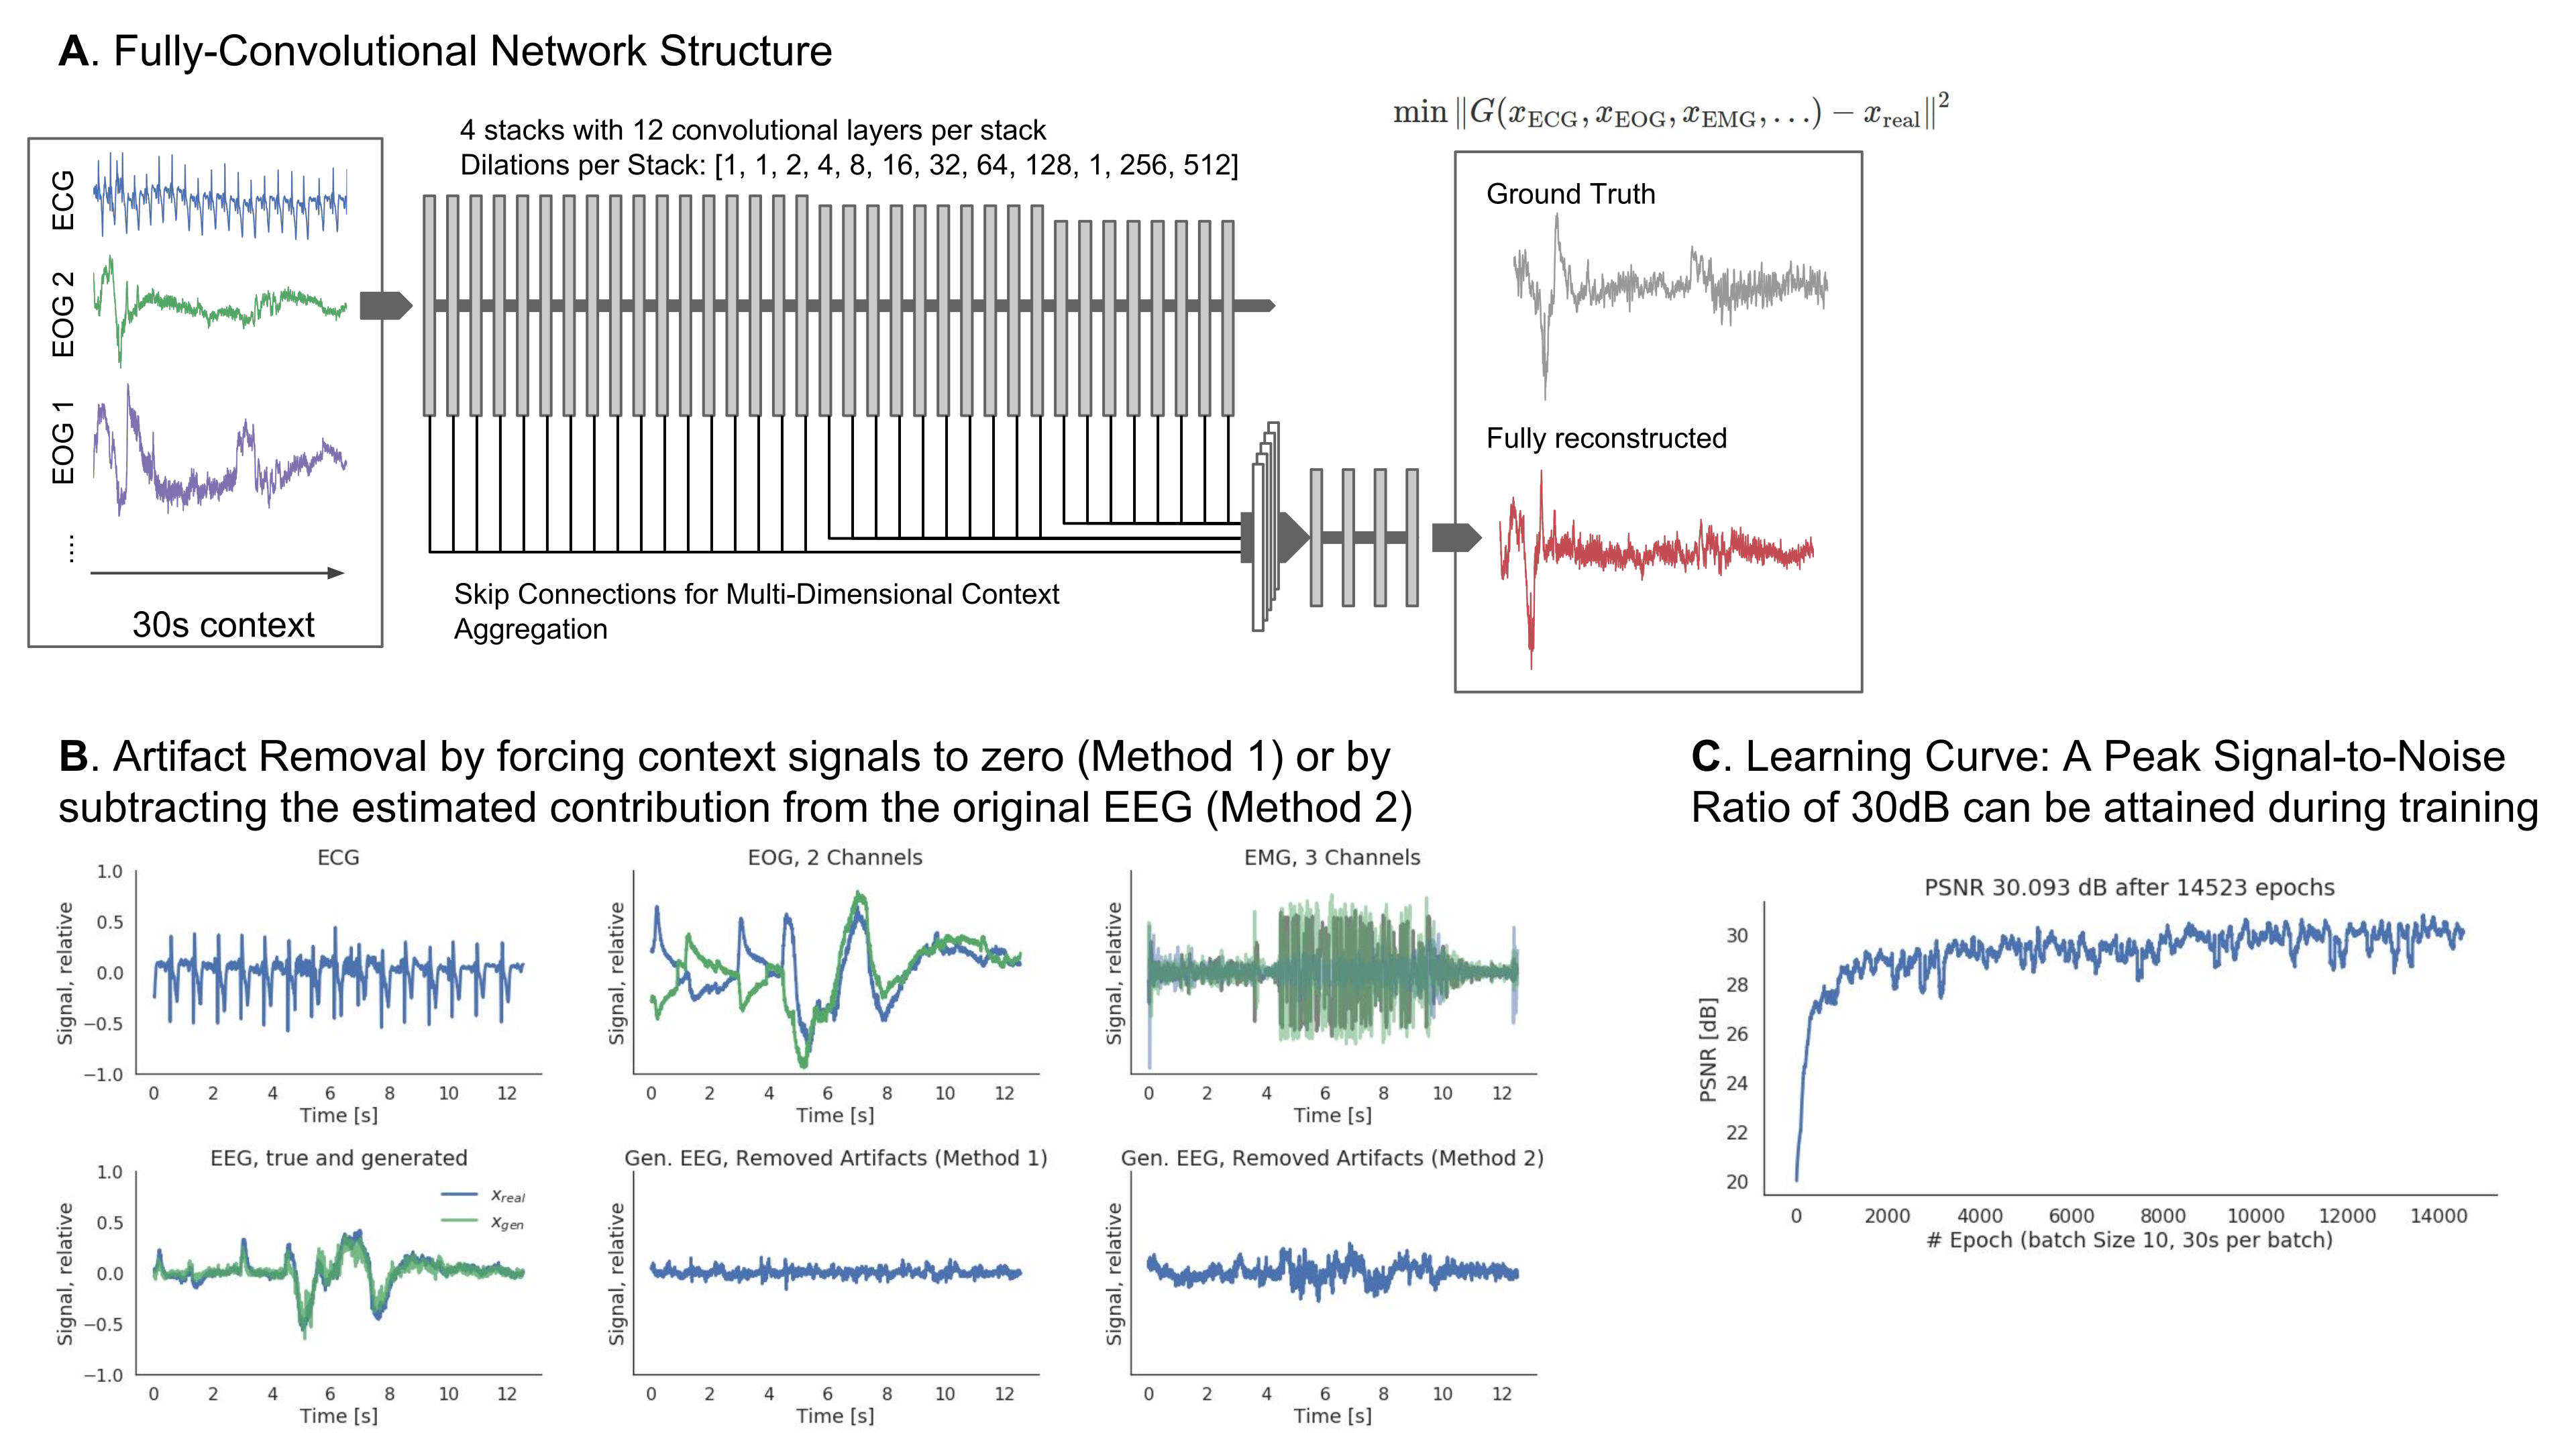 A. Proposed WaveNet-inspired network architecture. Using recordings from ECG, EOG and EMG recordings as context signals, the network generates an EEG sequence matching the context signals. B. Demonstration of artifact removal C. Network learning curve